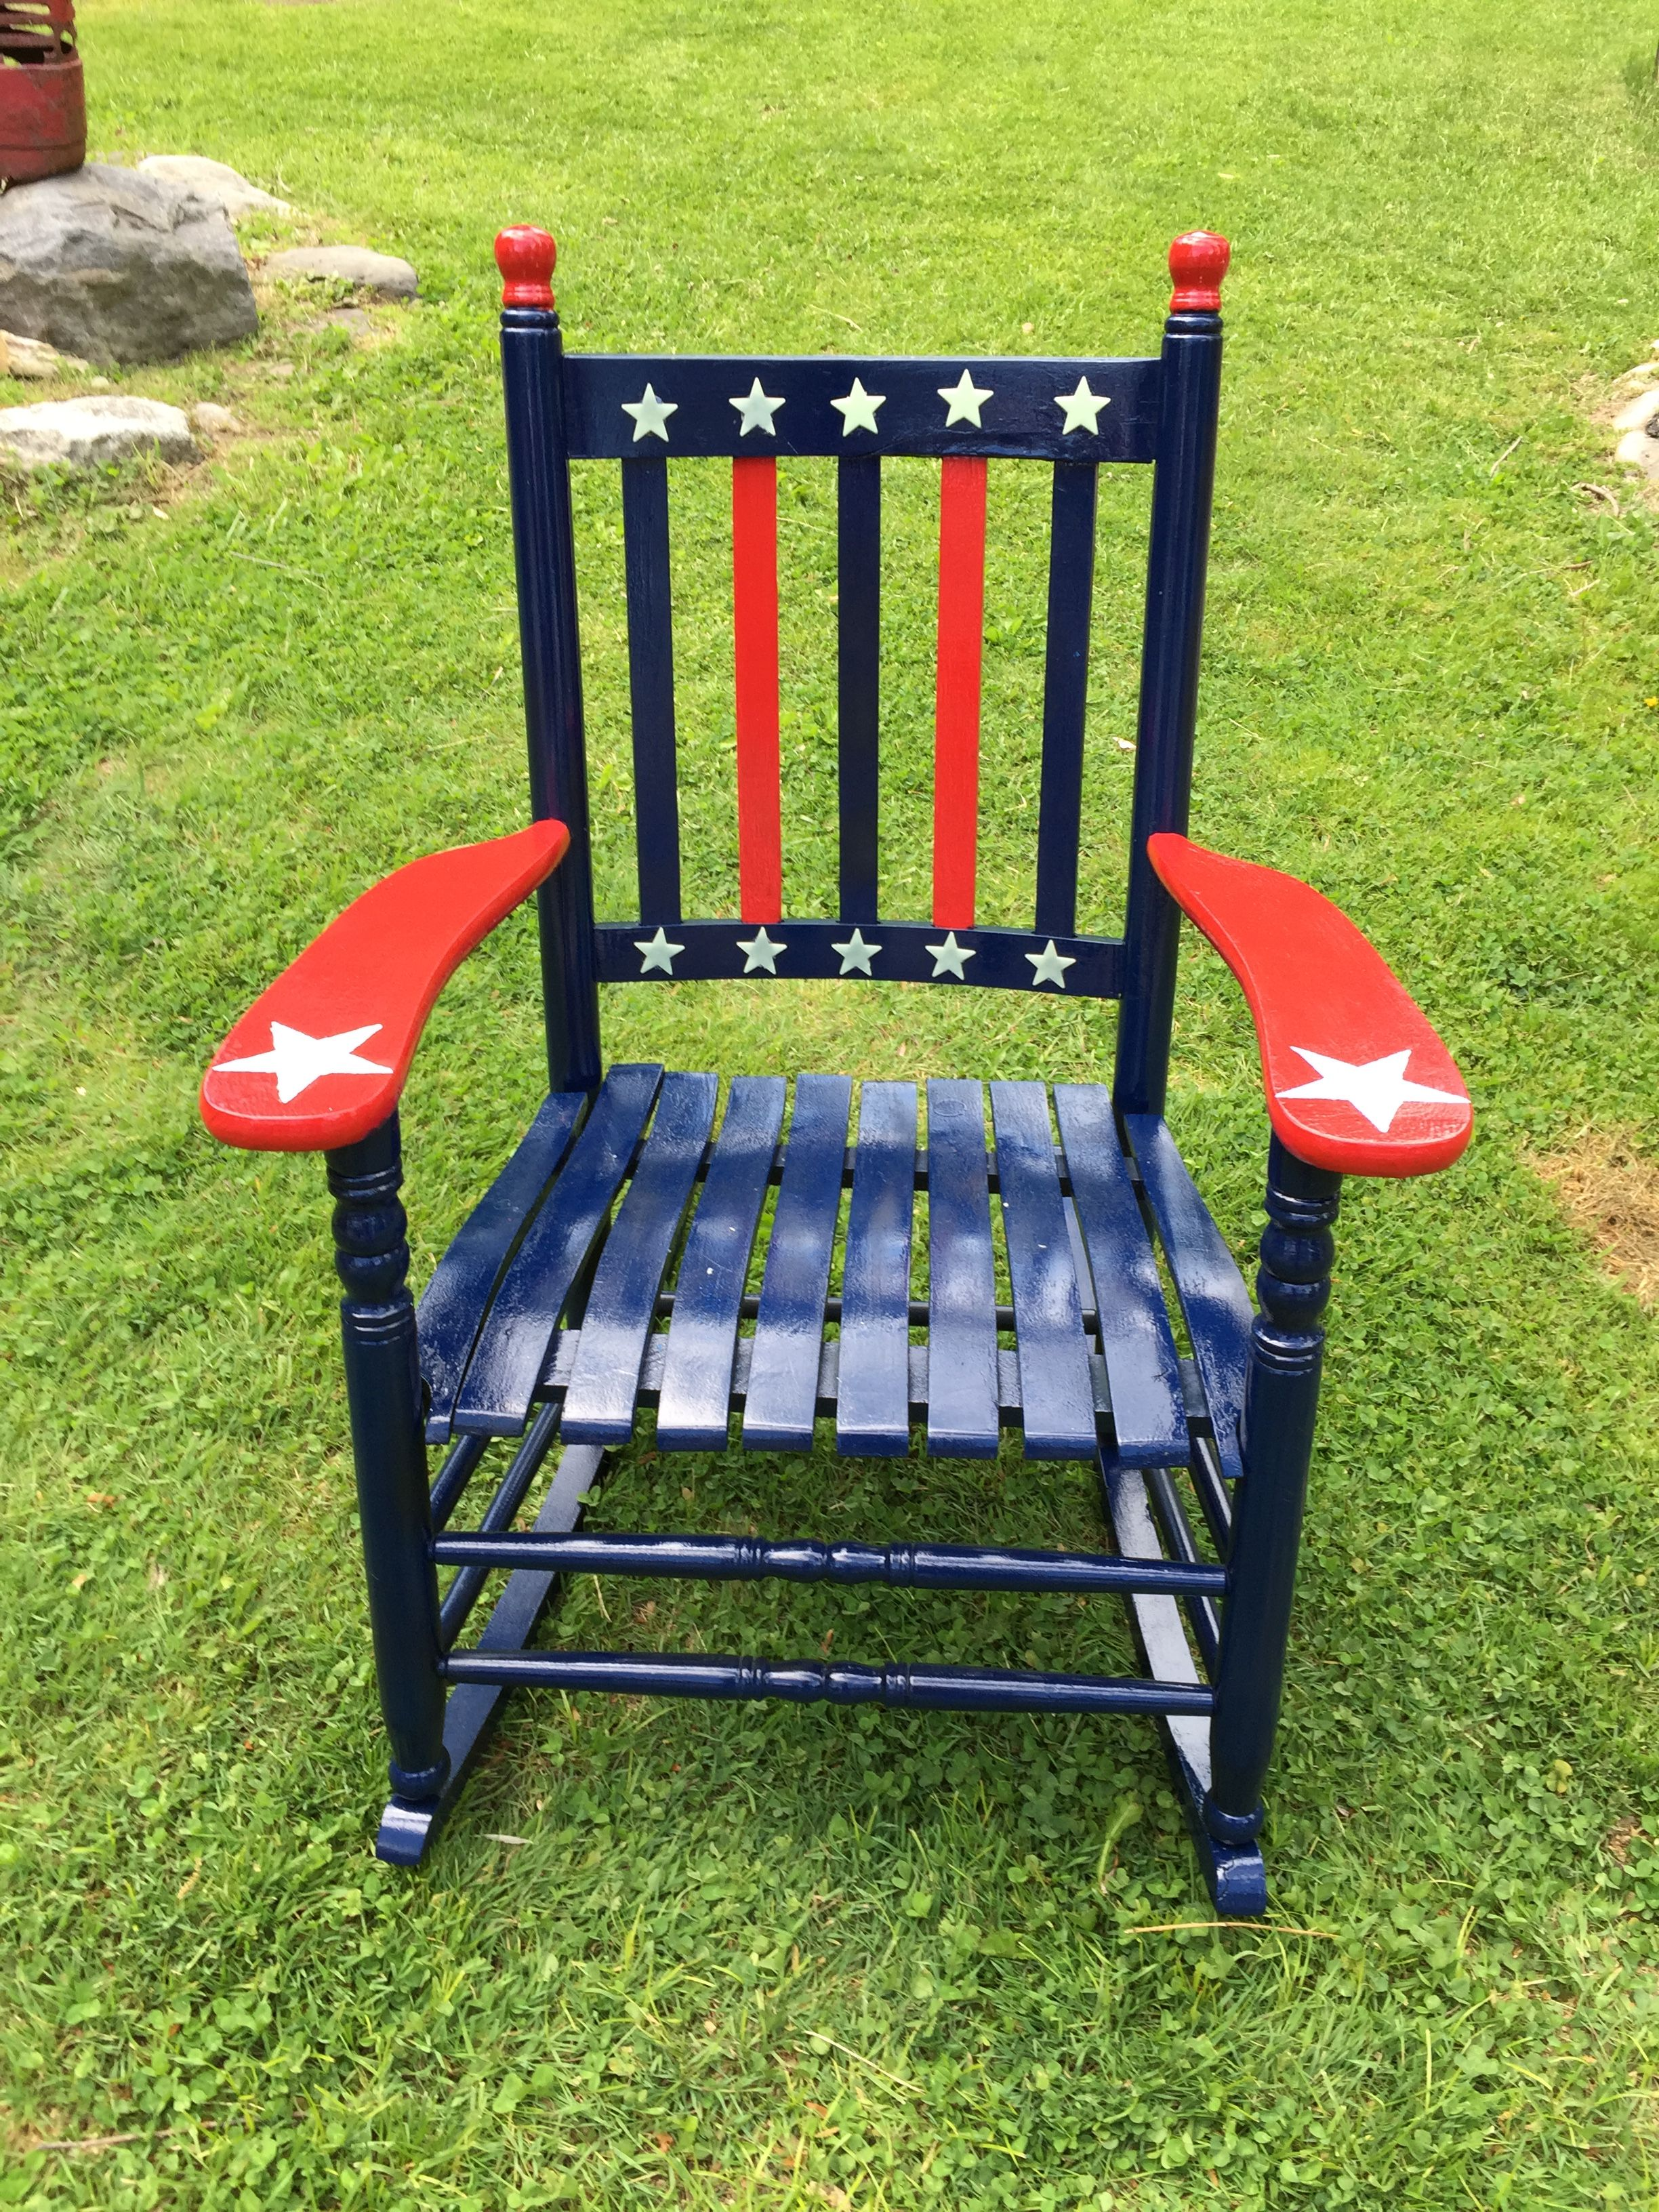 Awe Inspiring Old Rocking Chair Stripped And Repainted Red White Blue Pdpeps Interior Chair Design Pdpepsorg